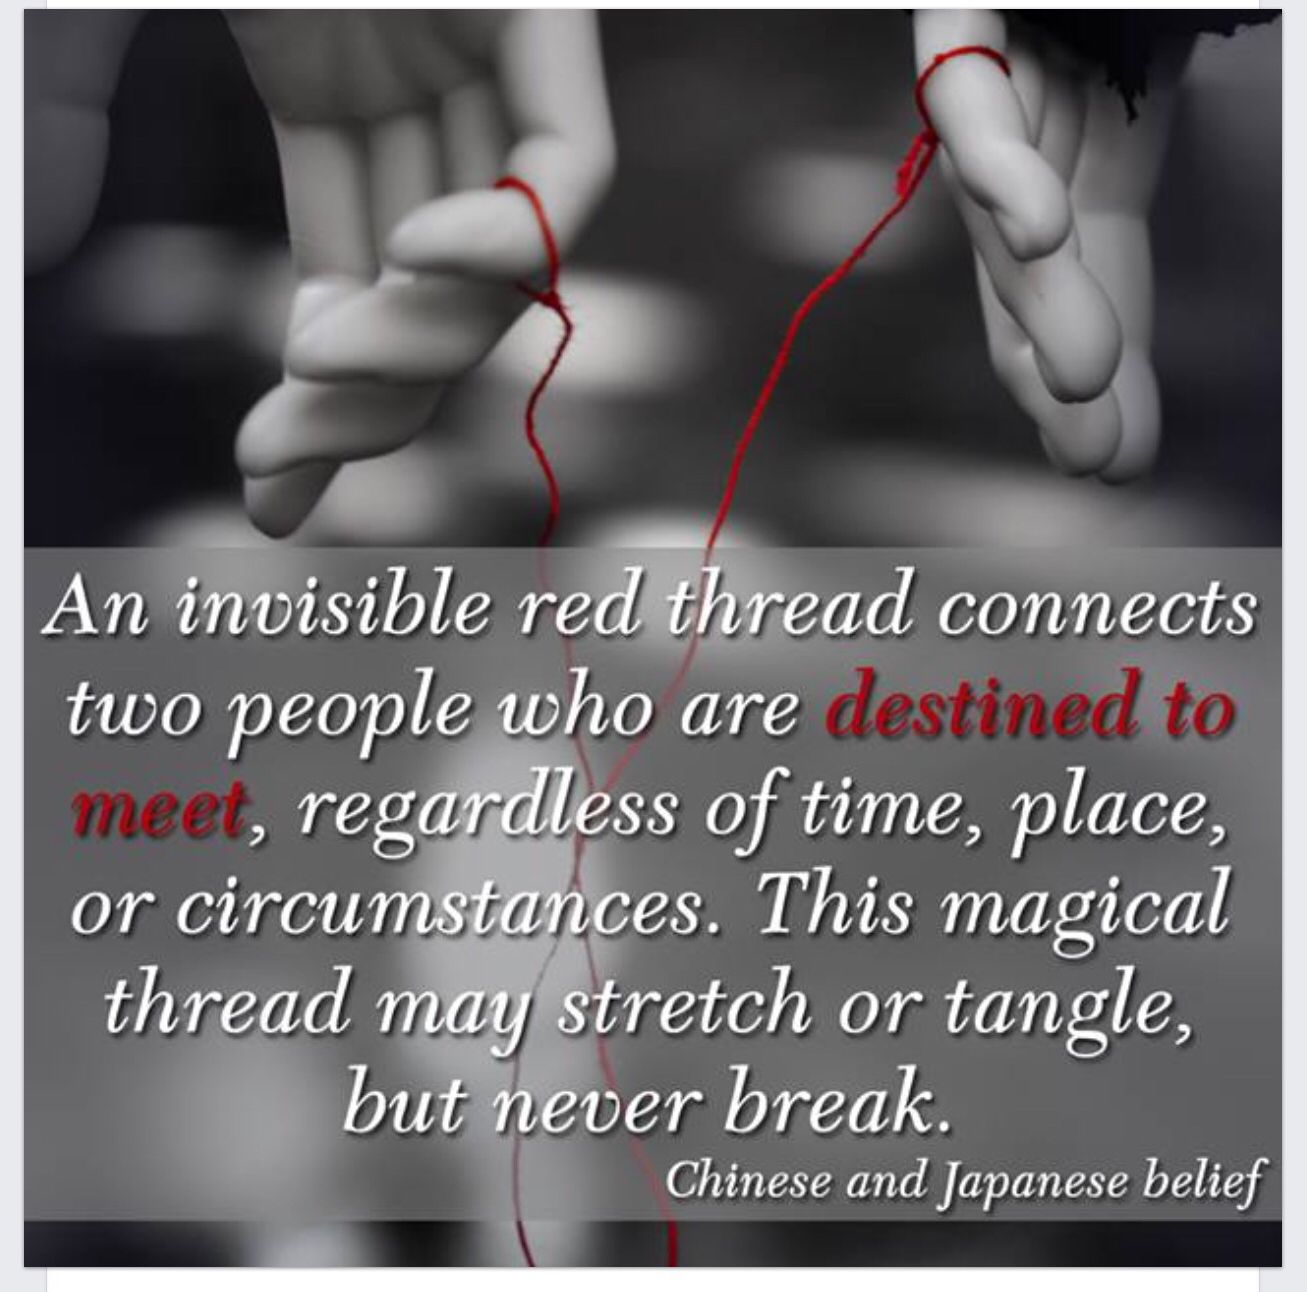 The magic, invisible thread connected those who are destined to meet